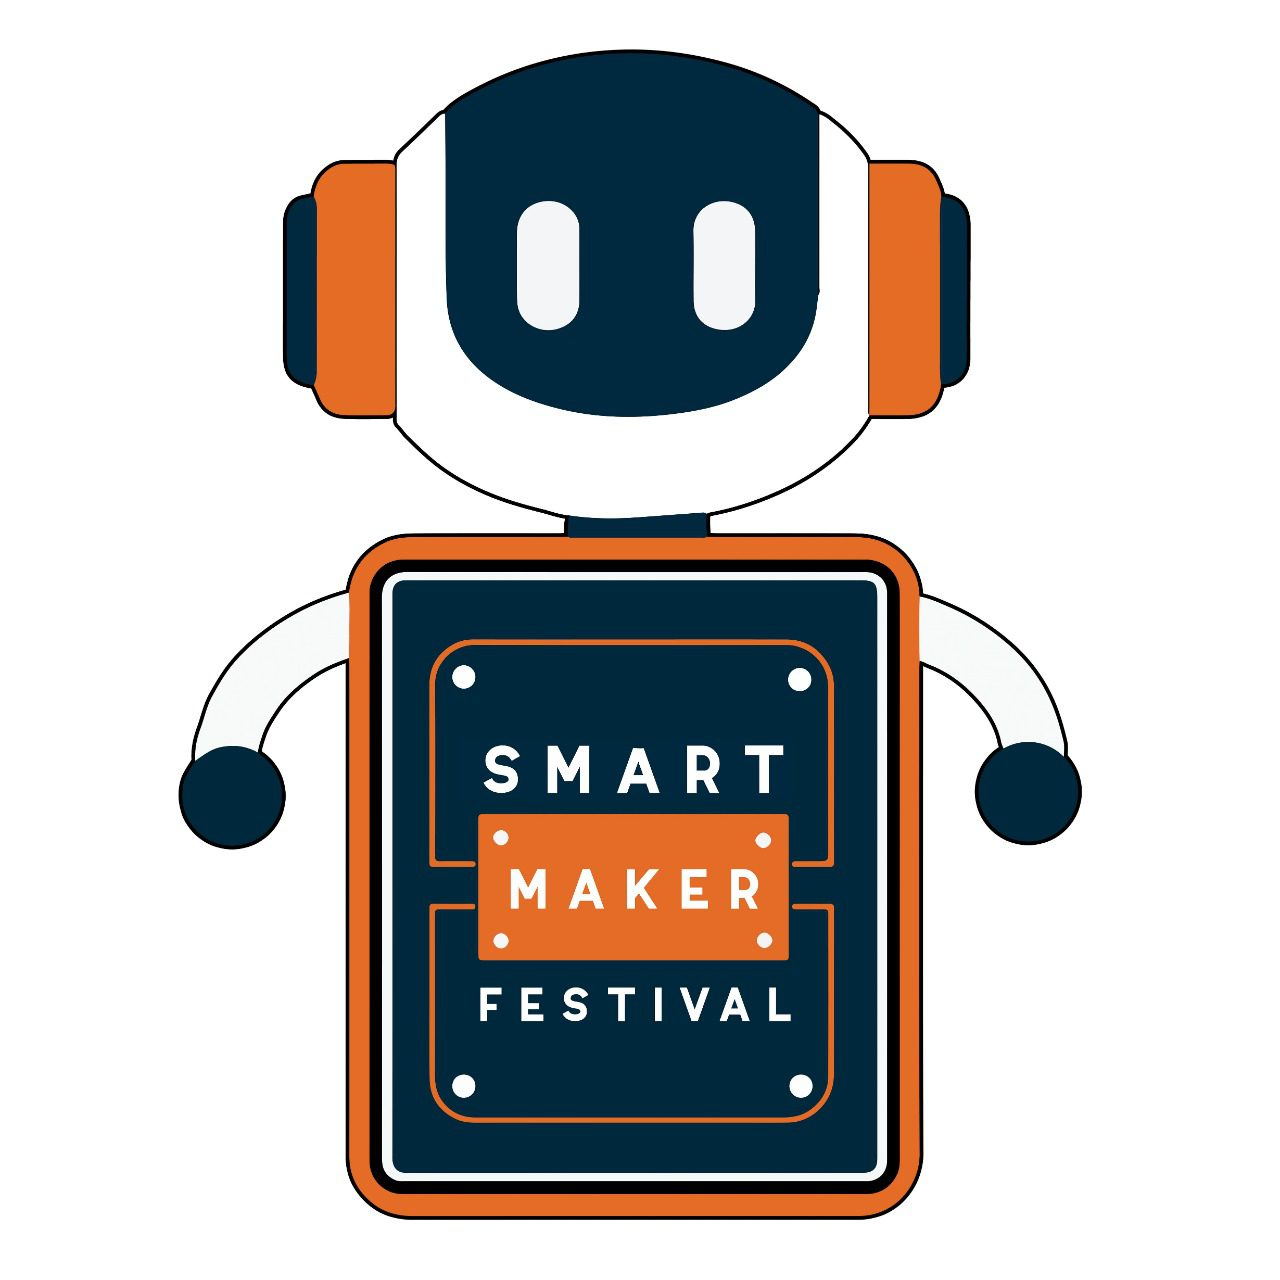 SMART MAKER FESTIVAL GLOBAL INNOVACION